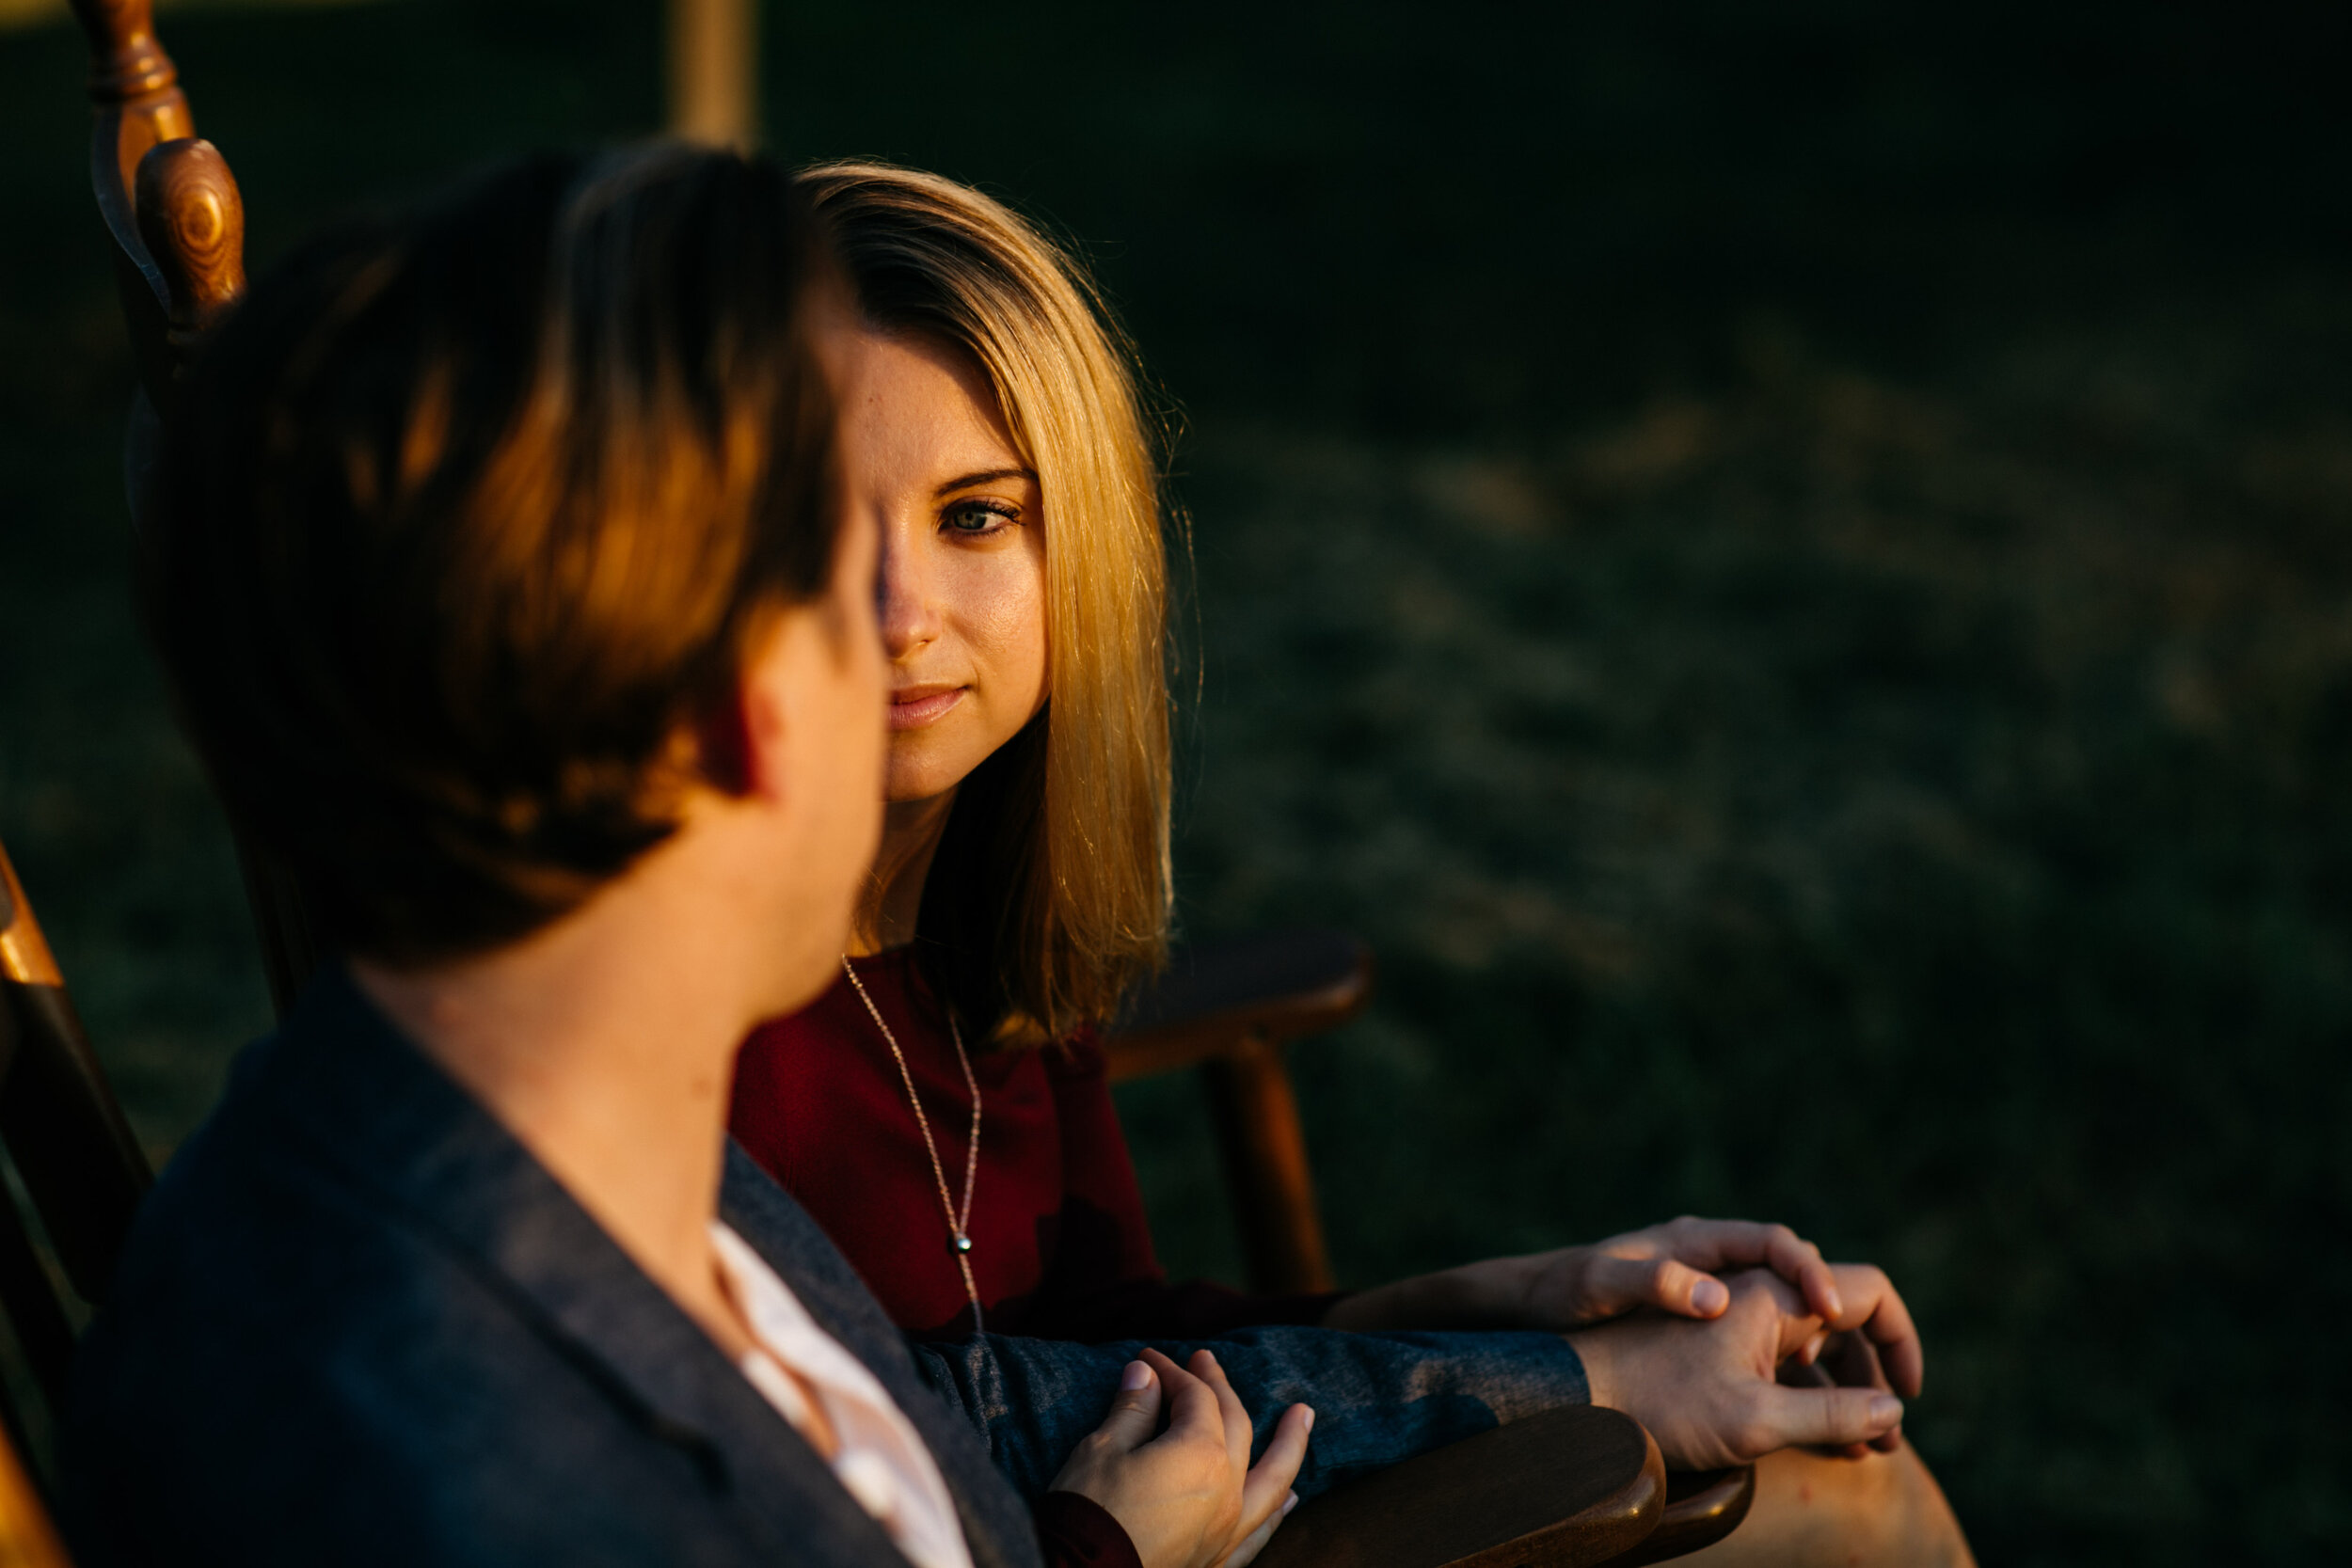 sasha_garth_engagement_mason_neck_state_park_summer_sunset_green_Forest-12.jpg